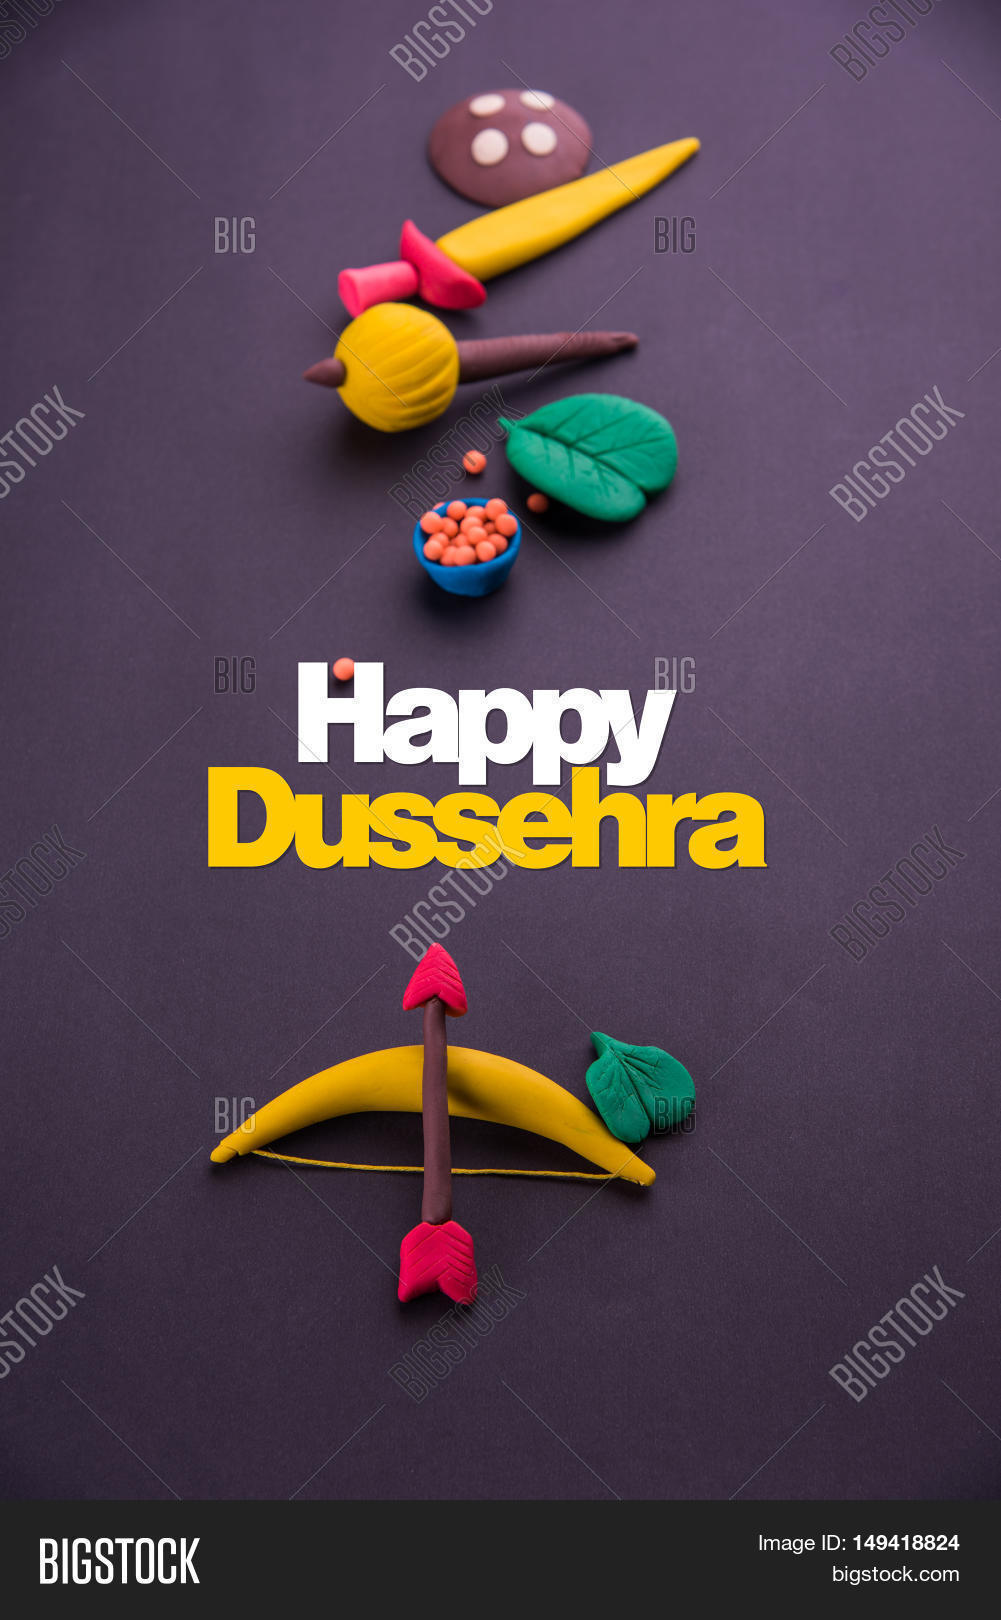 Happy dussehra image photo free trial bigstock happy dussehra greeting card made using a photograph of colourful clay models of ancient indian armour m4hsunfo